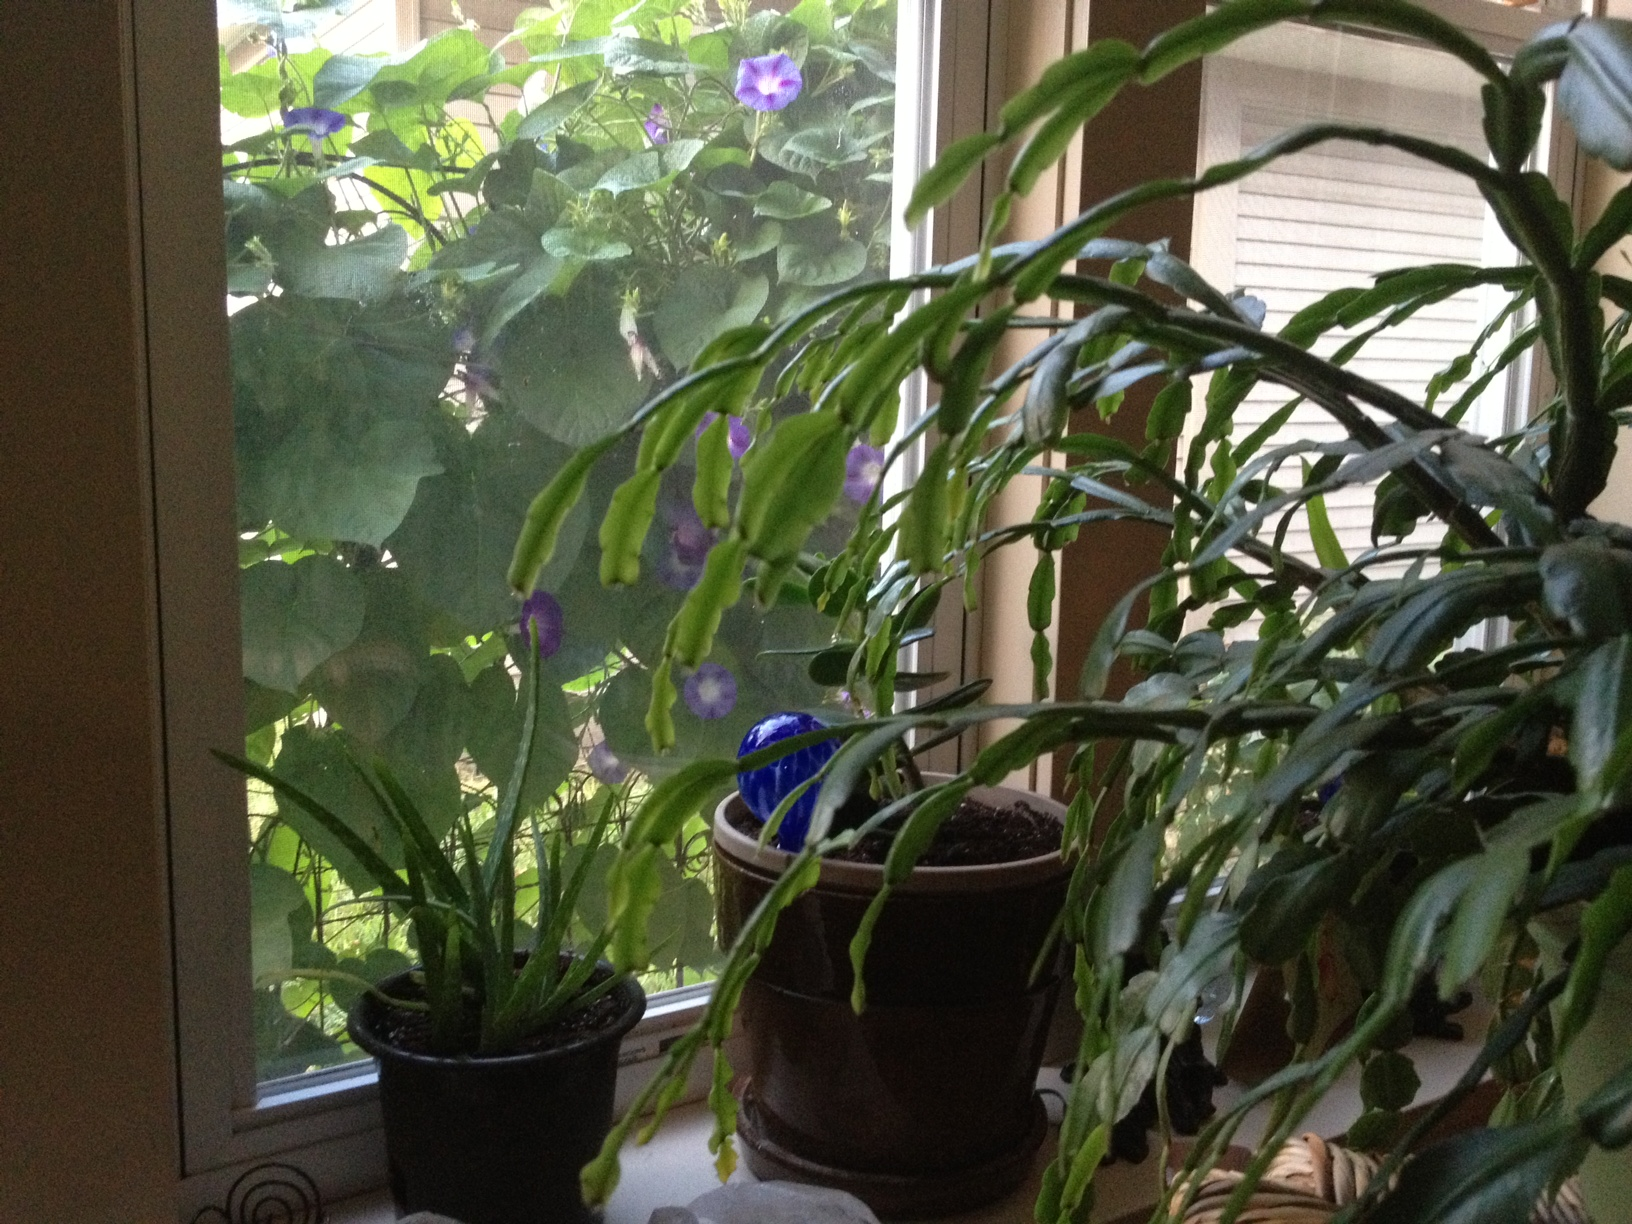 Morning glories from inside